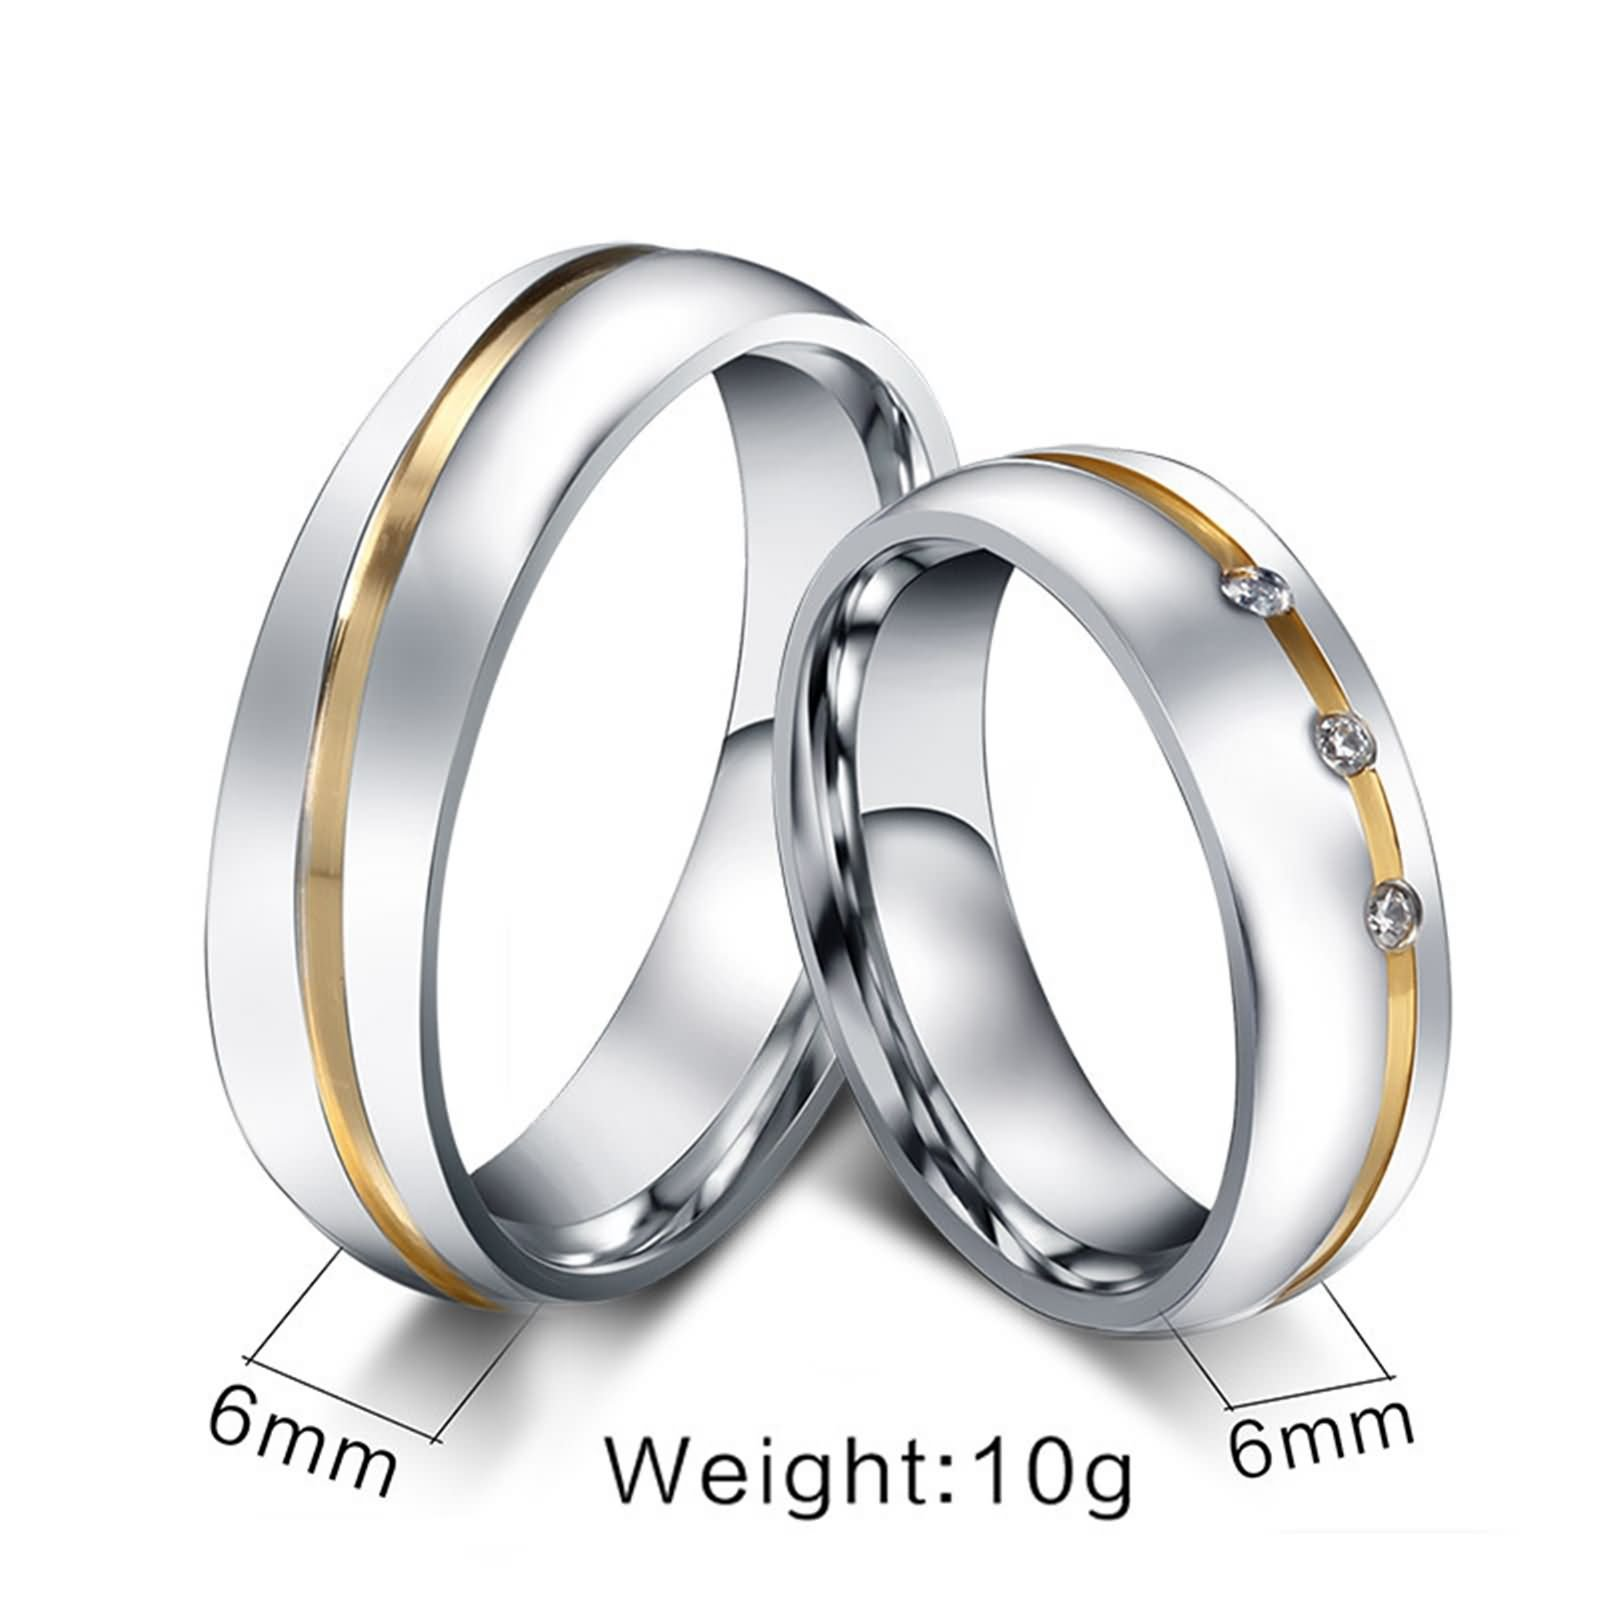 Beydodo Titanium Rings Set for Women Stainless Steel Ring Bands Round CZ Women Size 7 & Men Size 12 by Beydodo (Image #2)